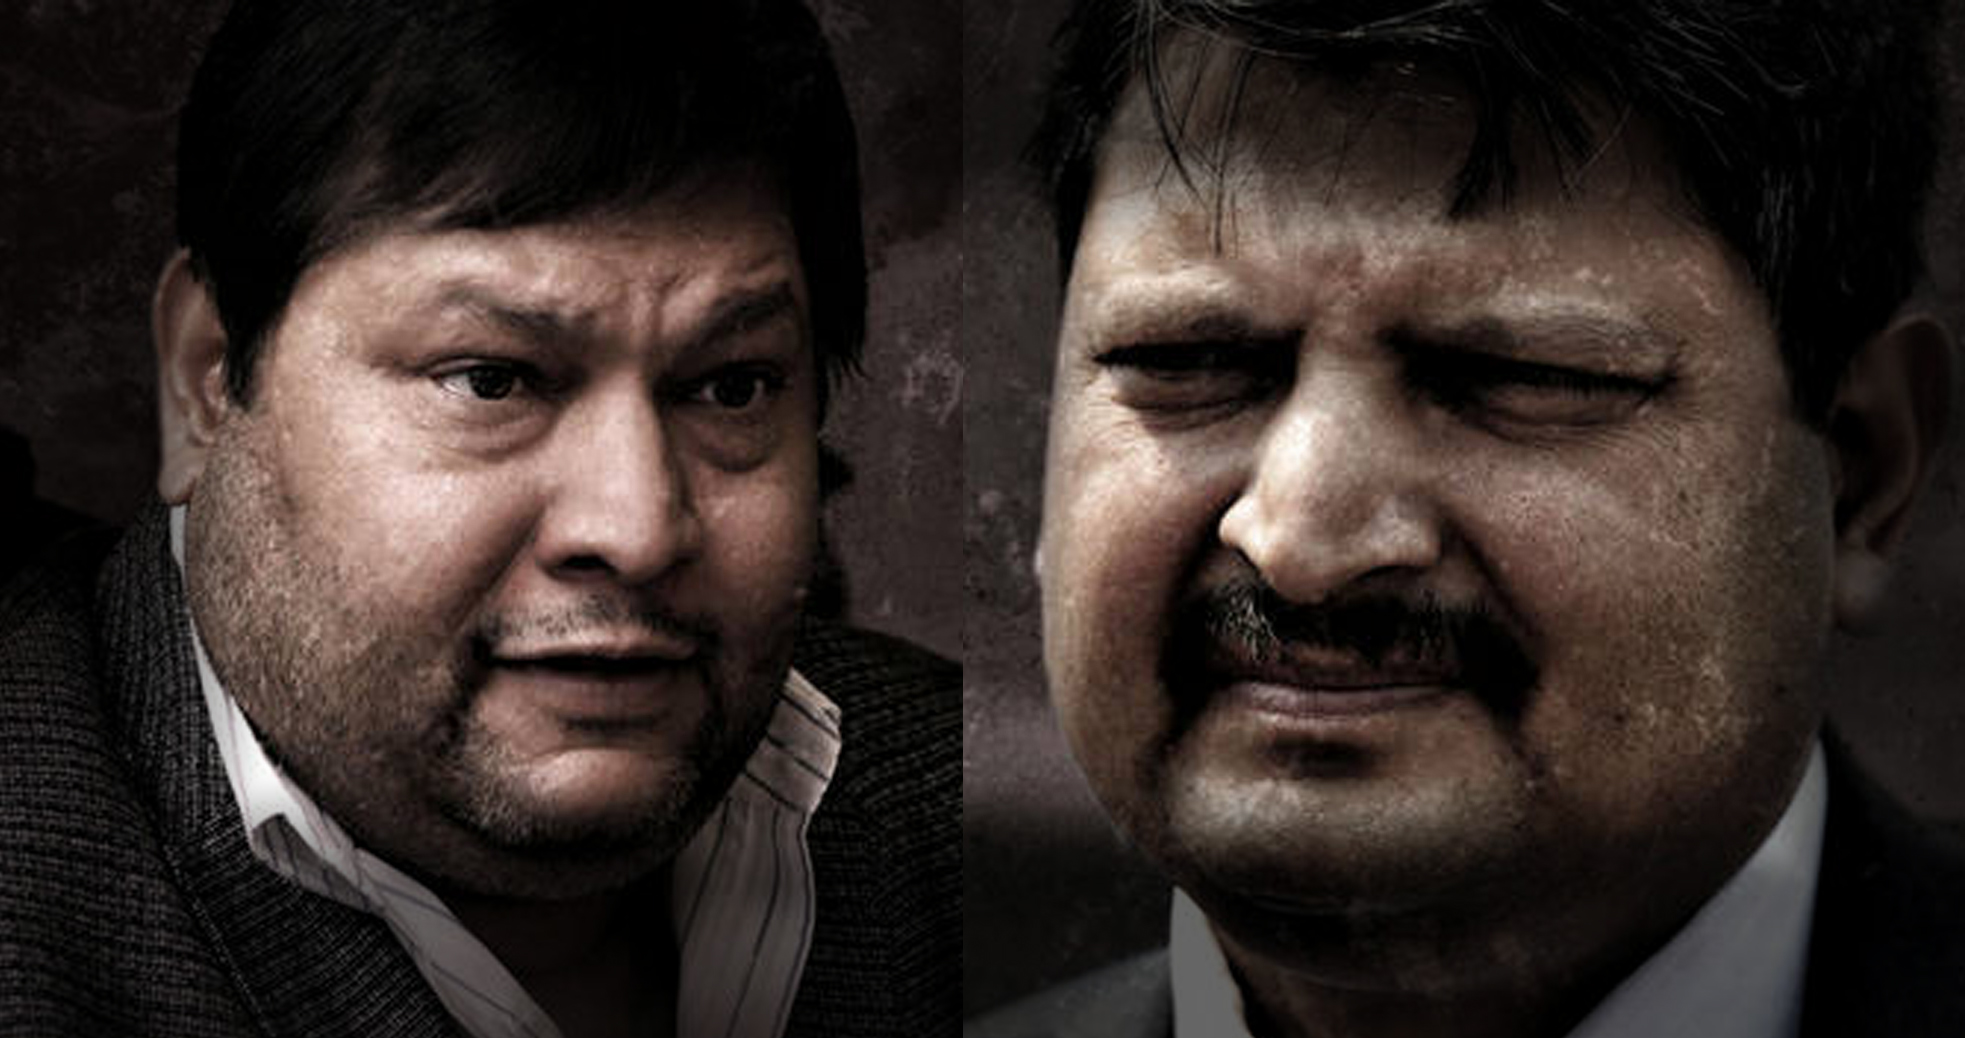 Guptas join a cast of international villains ensnared by US sanction law